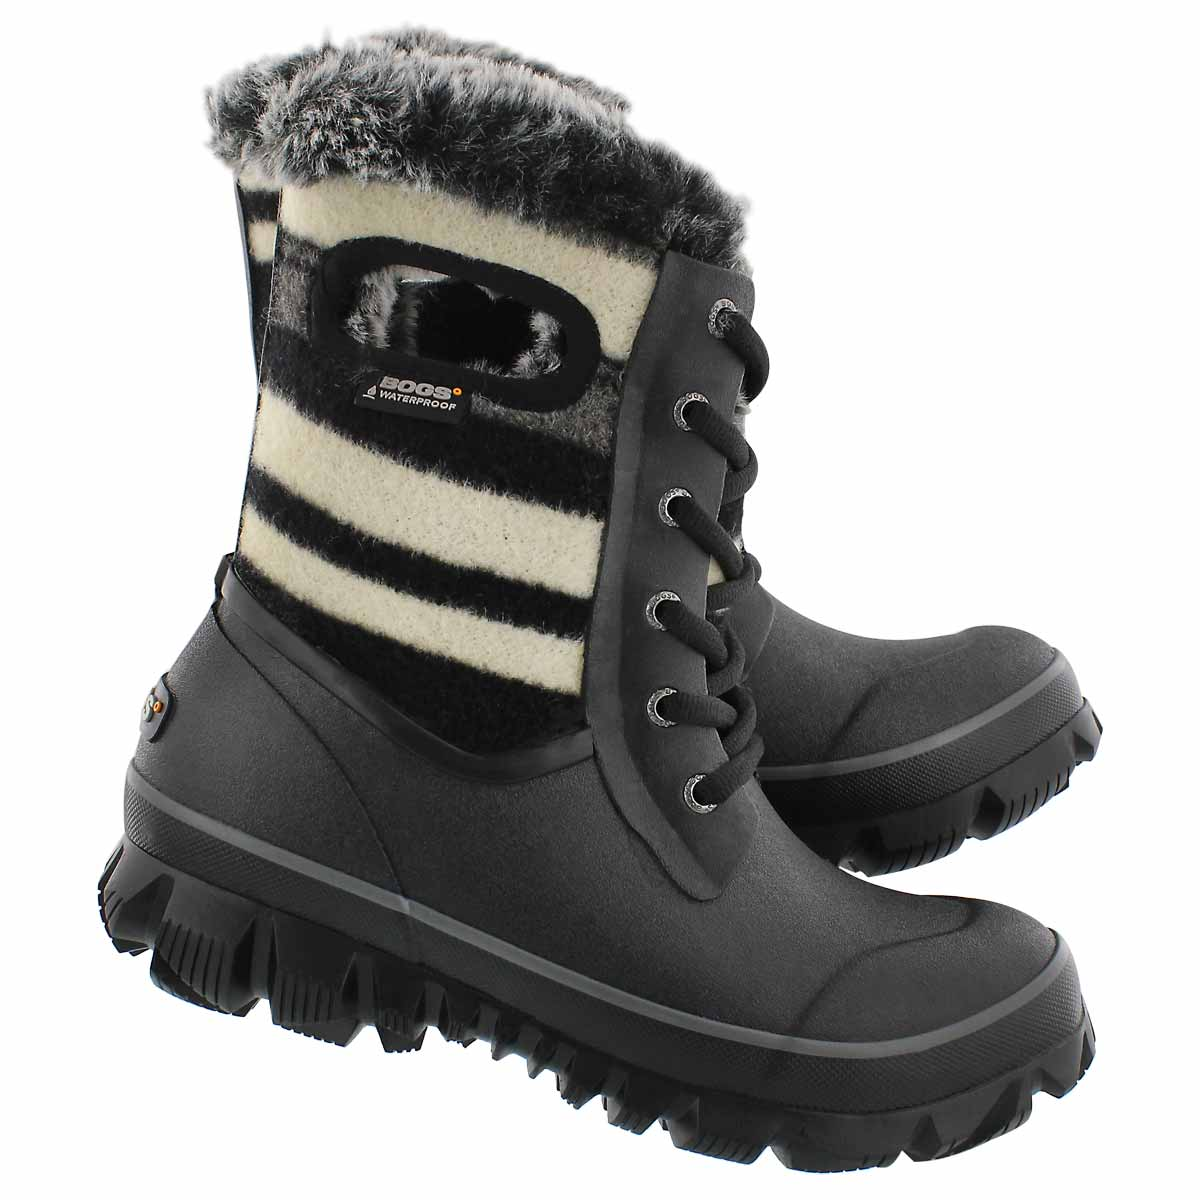 Lds Arcata Stripe blk multi wtpf boot